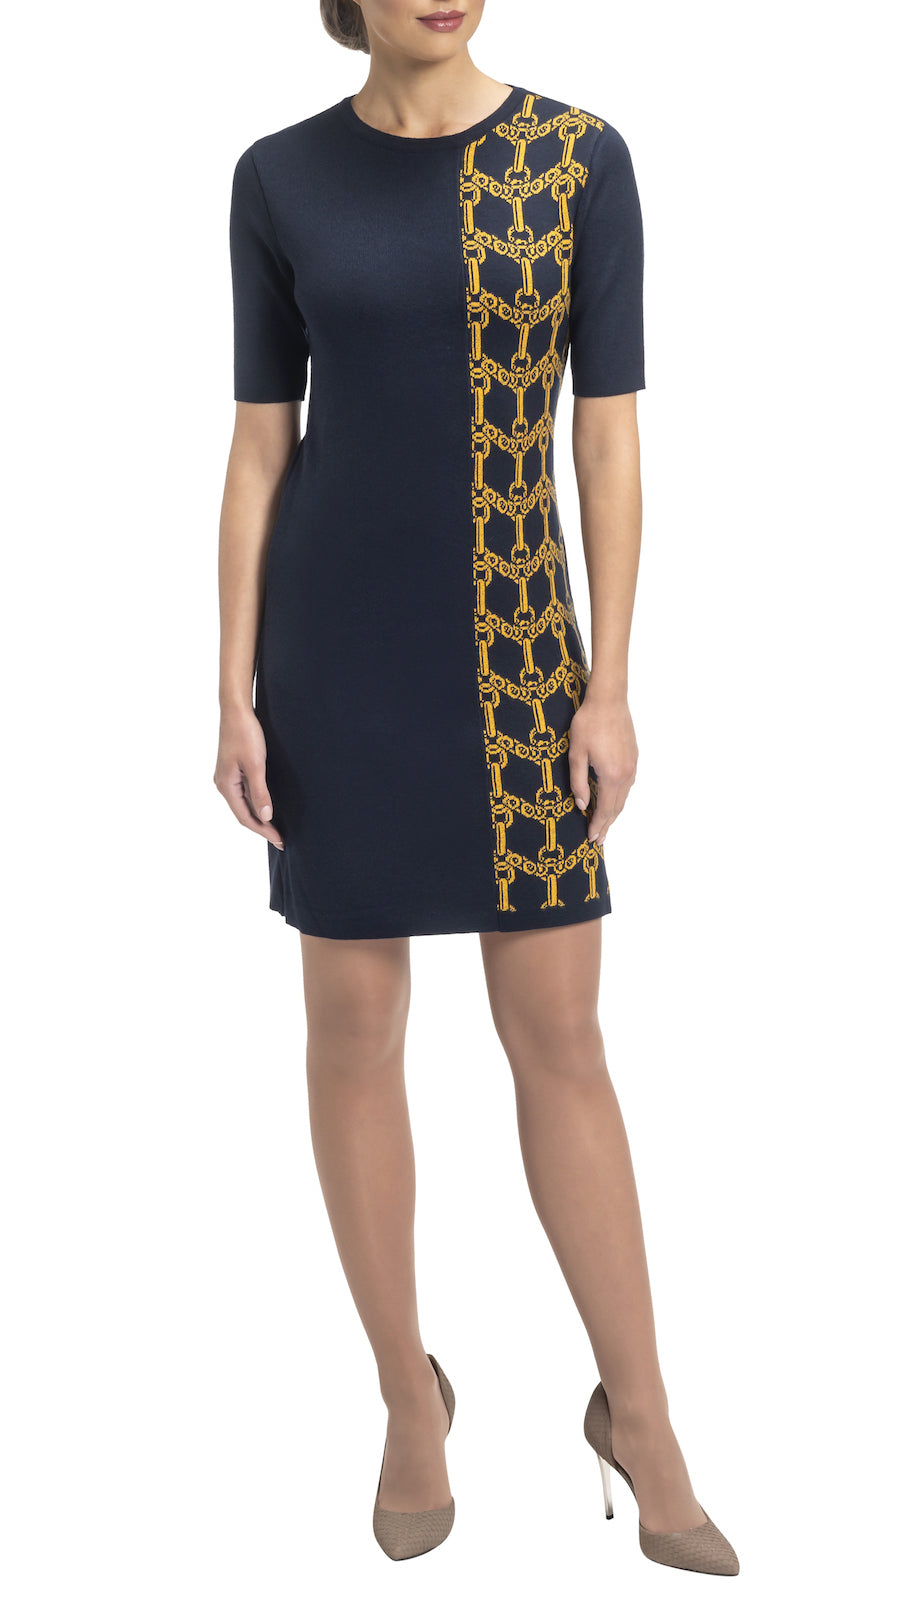 CONTEMPO Janie knitted dress, Navy-Gold